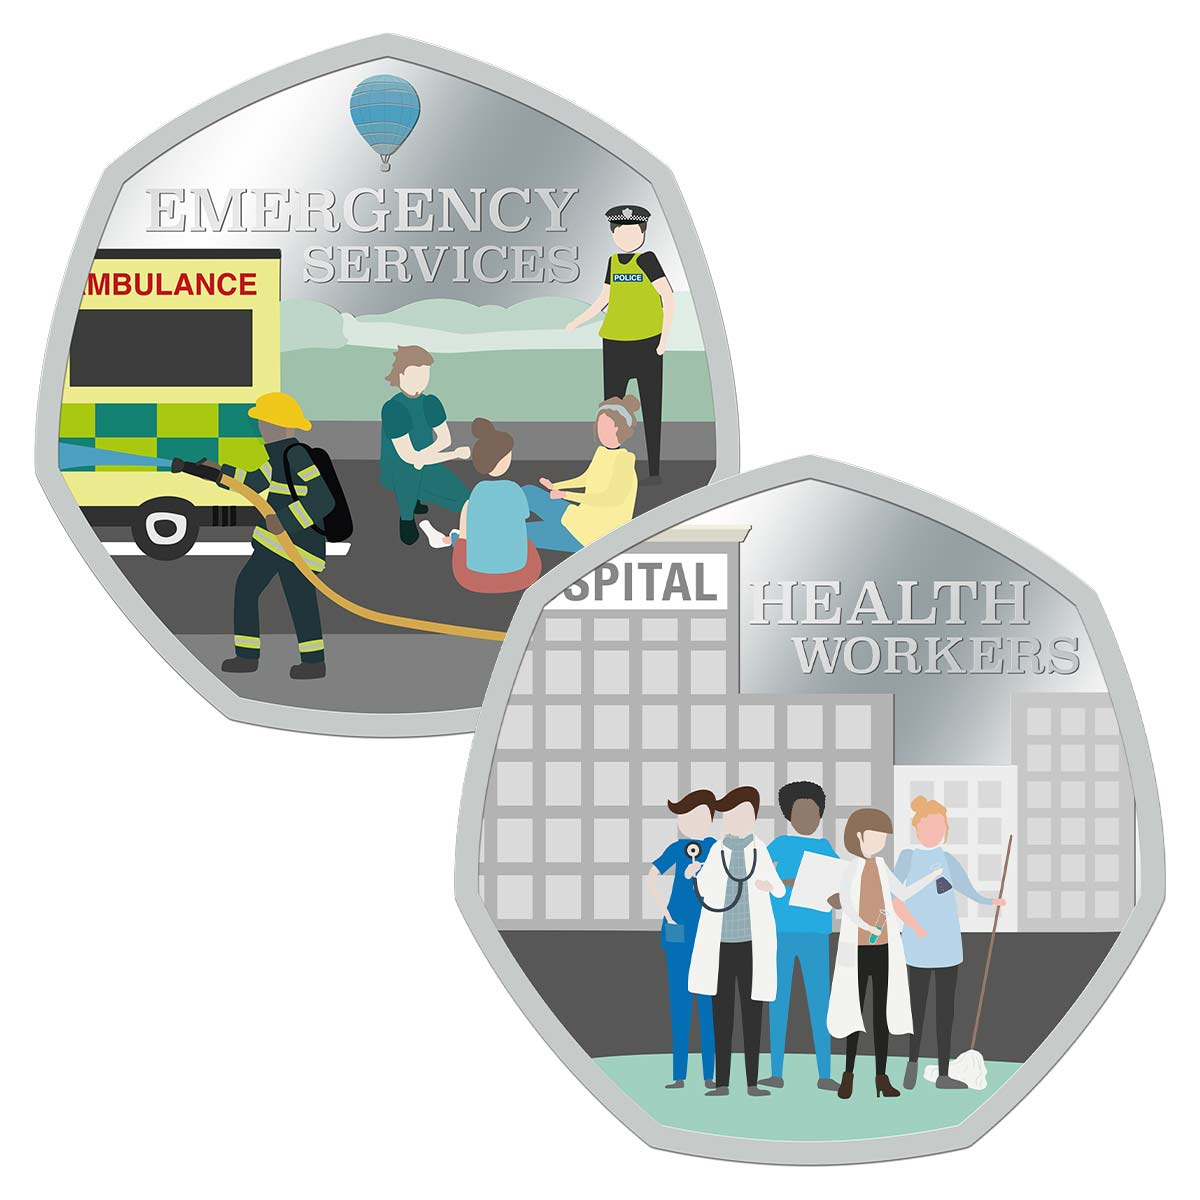 Thank-you Emergency Services & Health workers